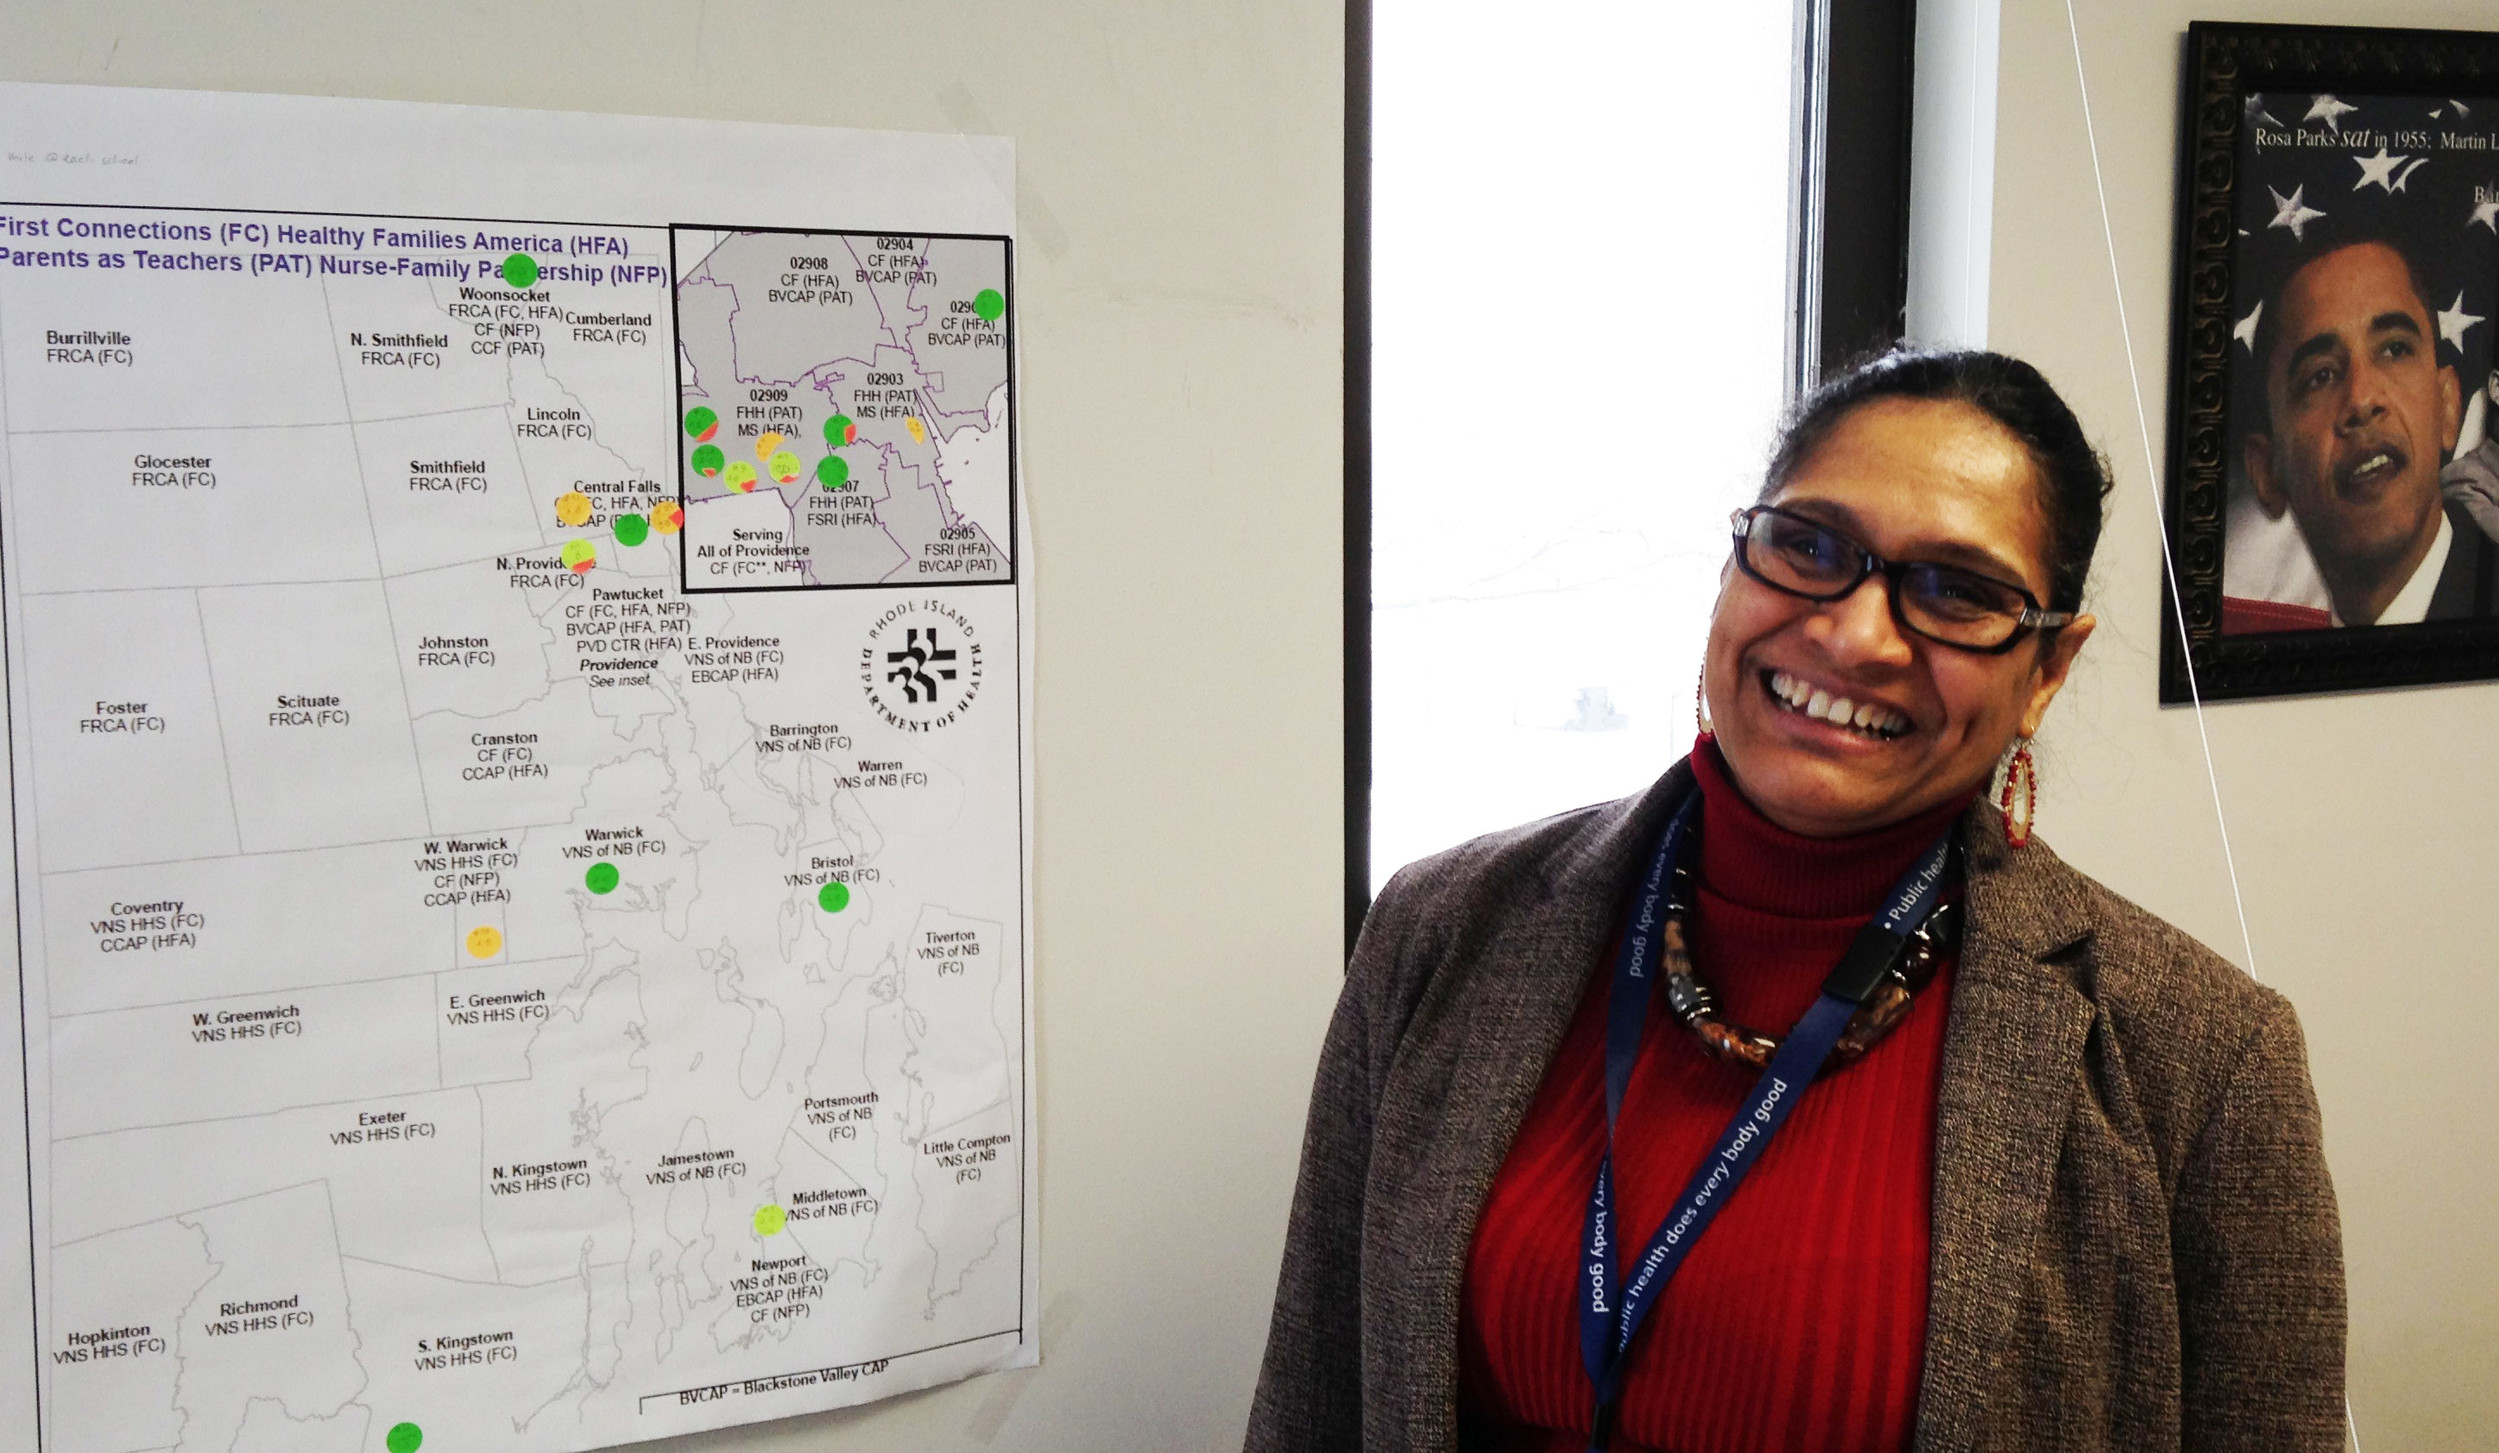 Ana Novais, the executive director of the division of Community, Family Health and Equity at the R.I. Department of Health, in front of a map of Rhode Island showing where the 11 Health Equity Zones will be located.